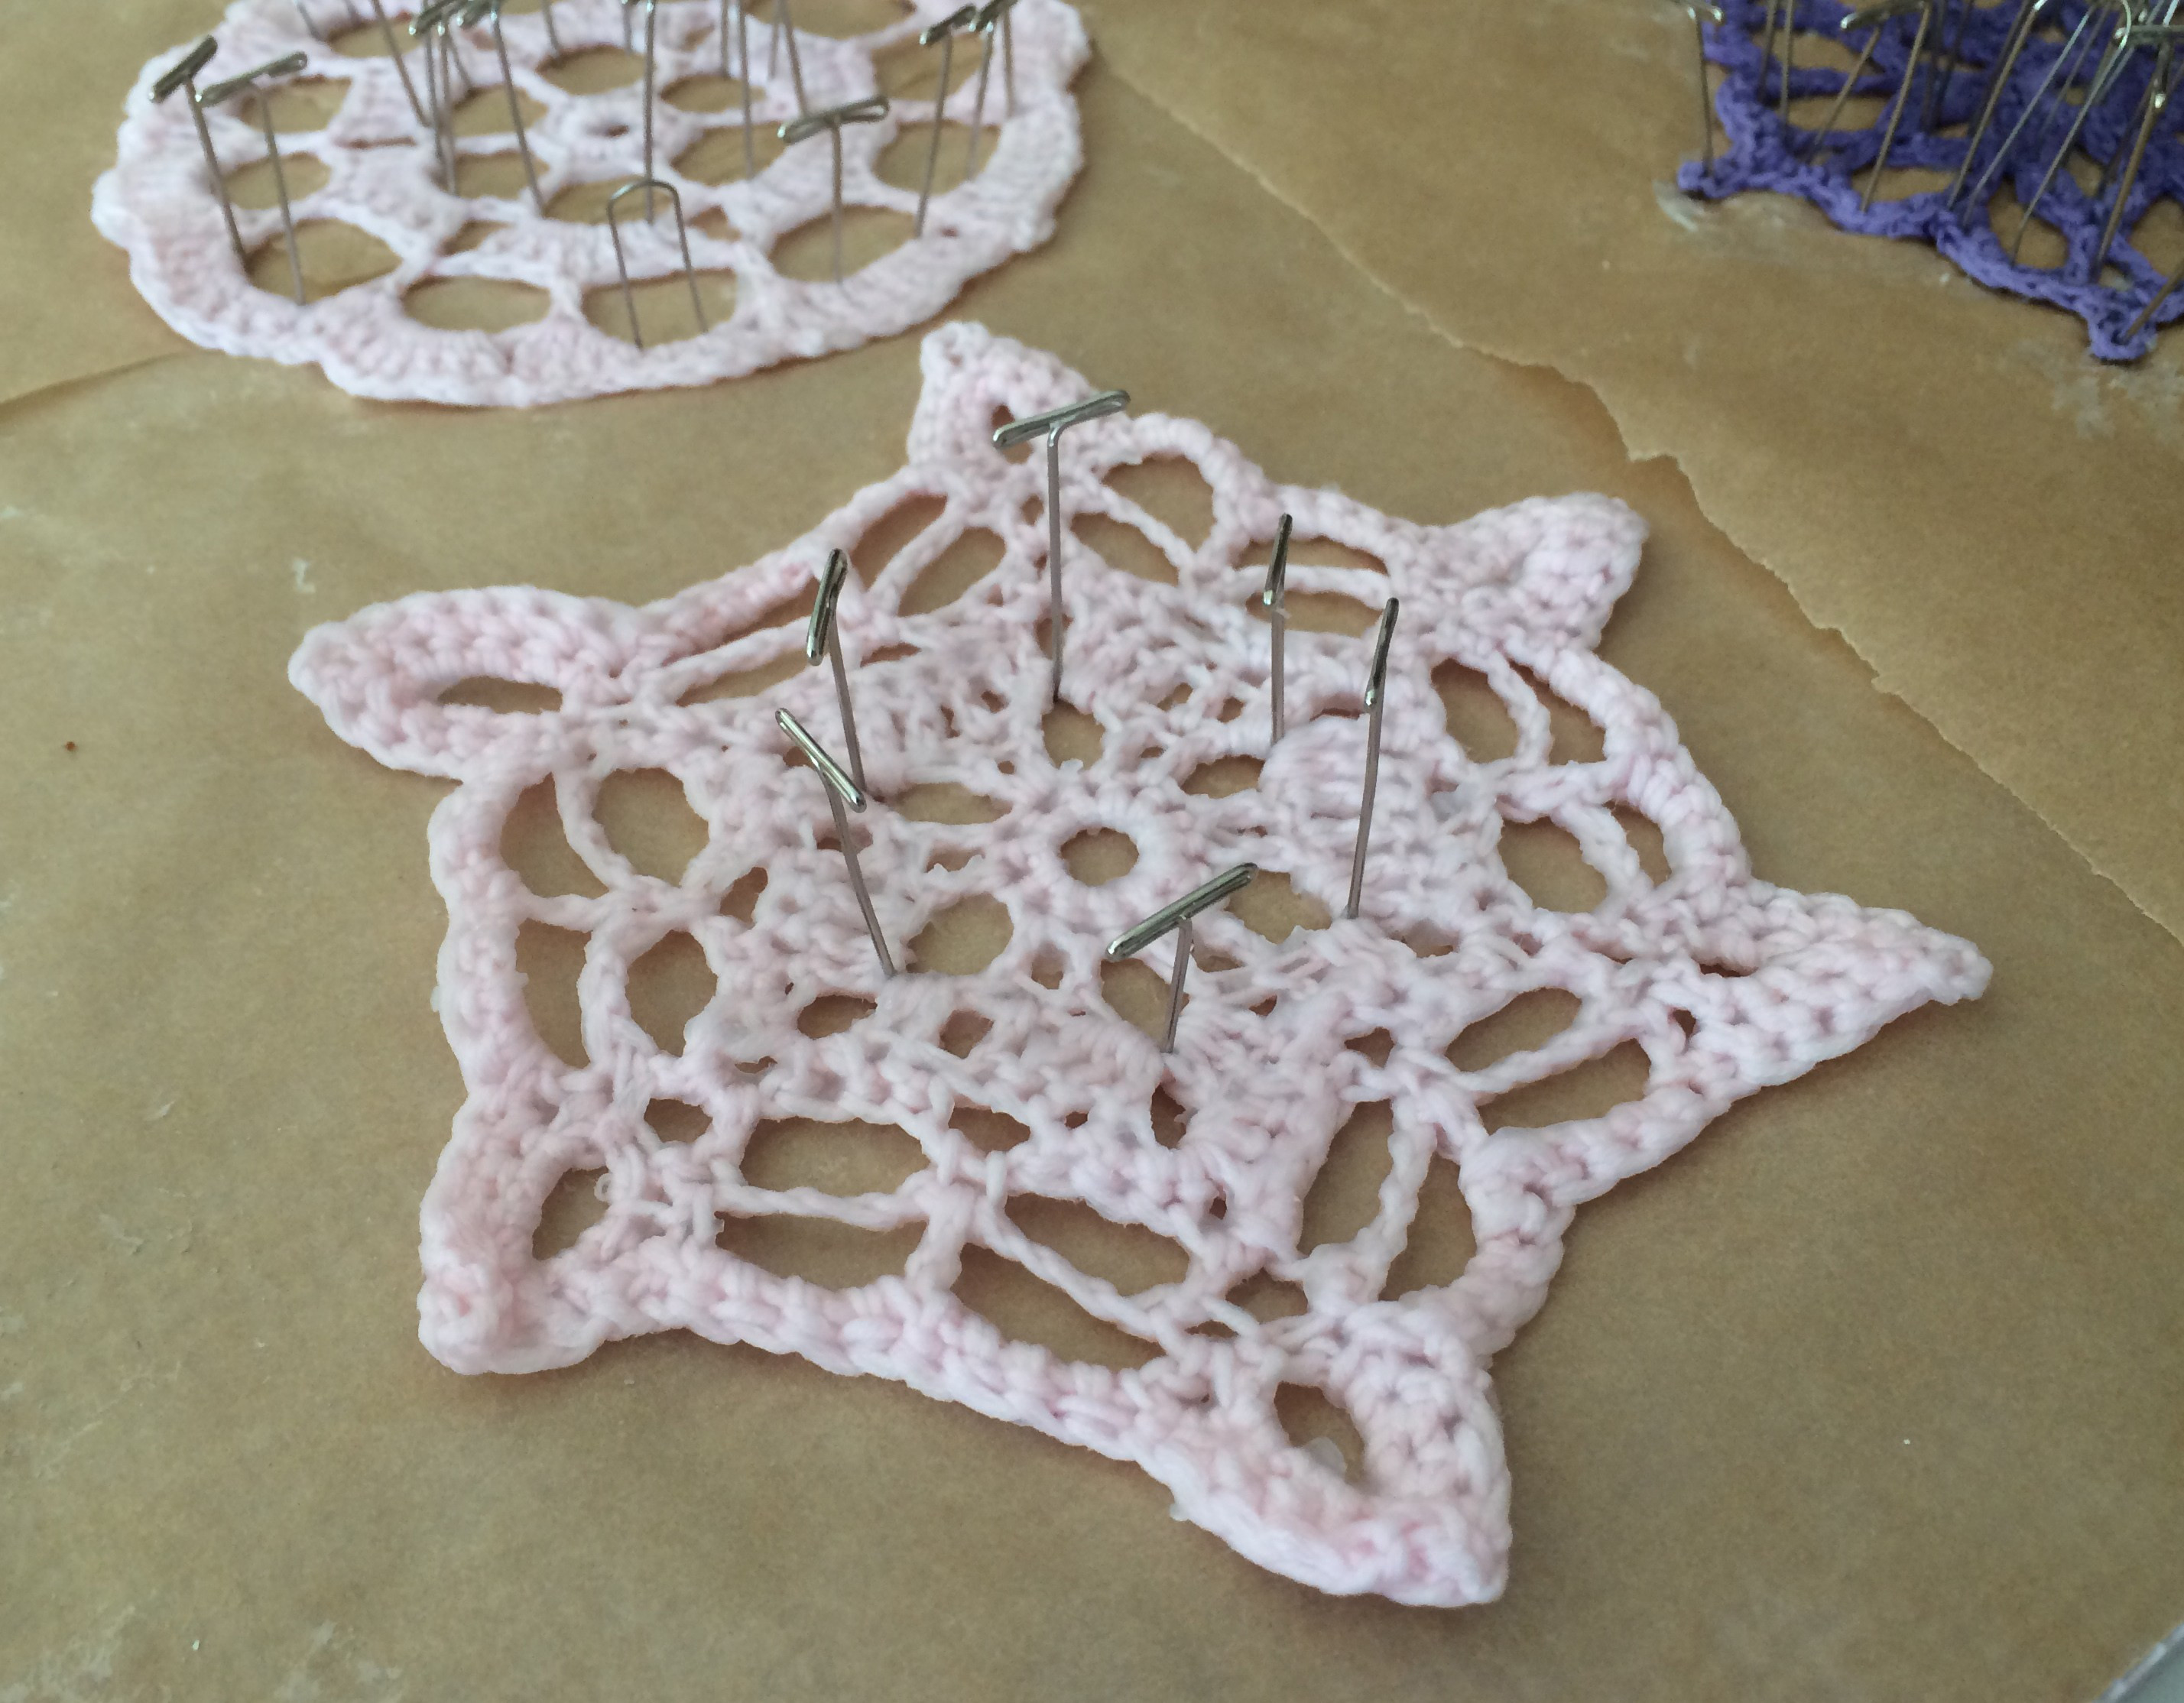 Crochet Snowflake Pattern Awesome How to Crochet Snowflake Patterns 33 Amazing Diy Of Wonderful 50 Photos Crochet Snowflake Pattern